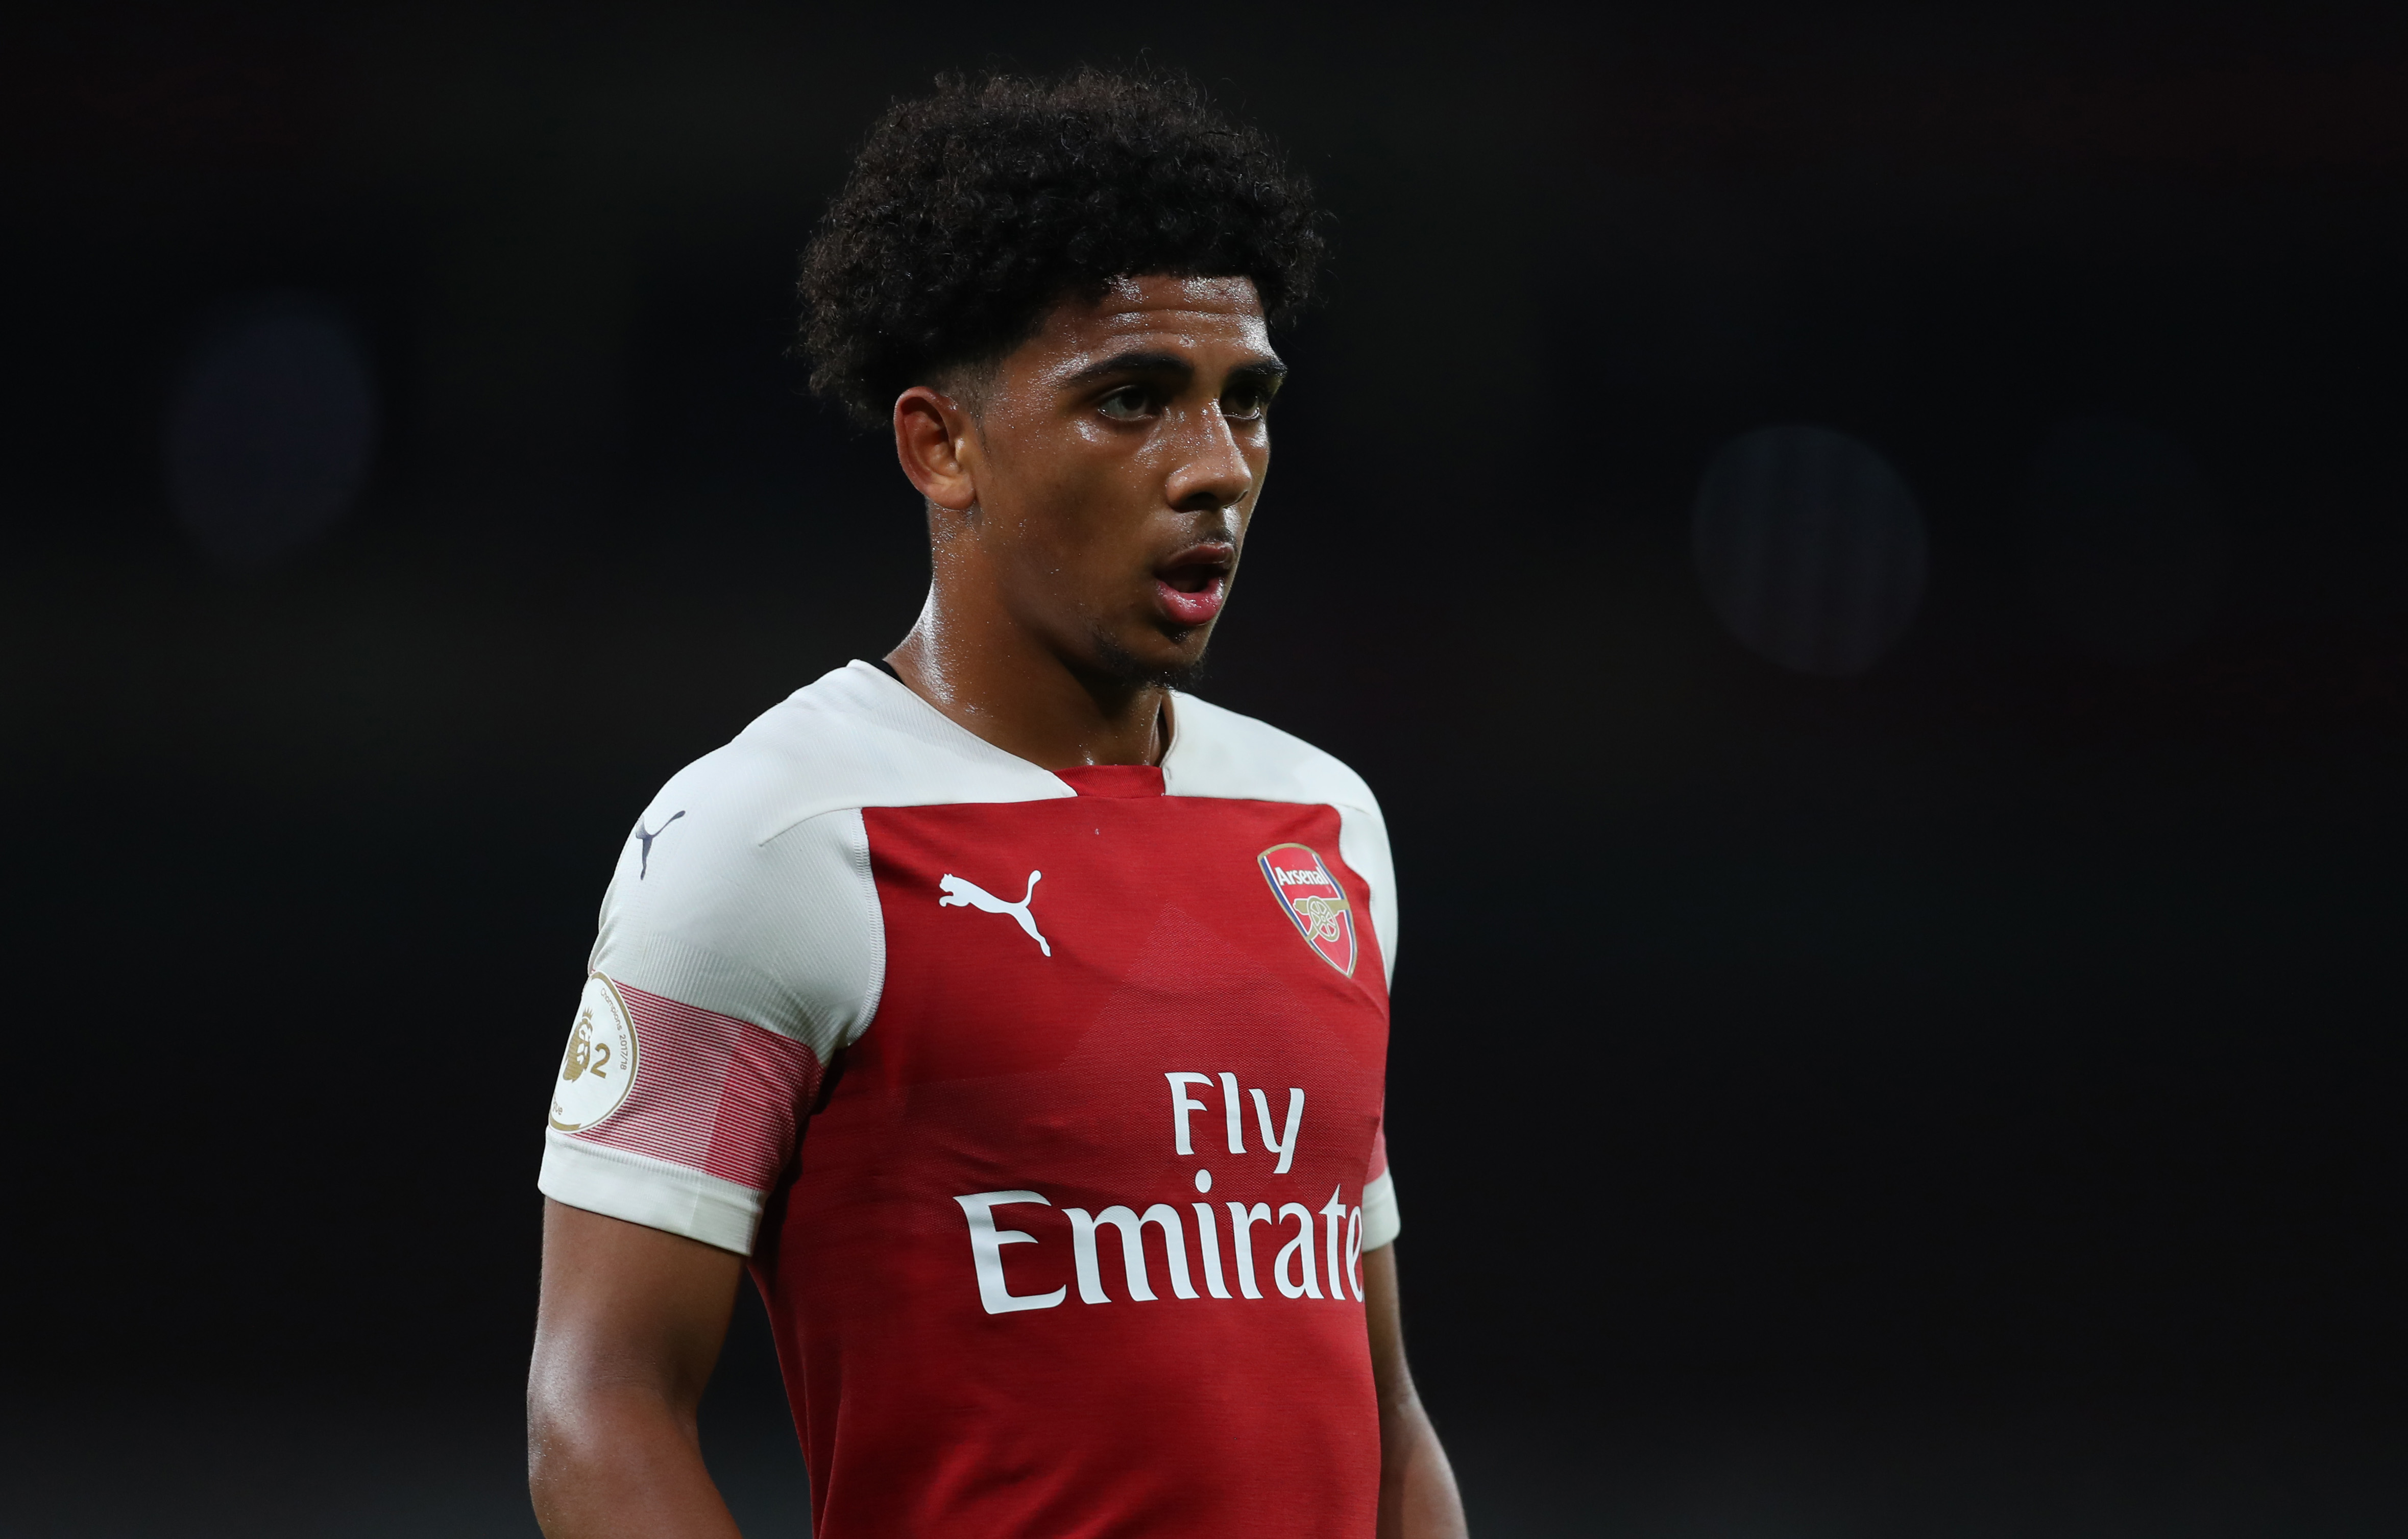 Xavier Amaechi has been impressing for Arsenal's U-22 side. (Photo courtesy: AFP/Getty)